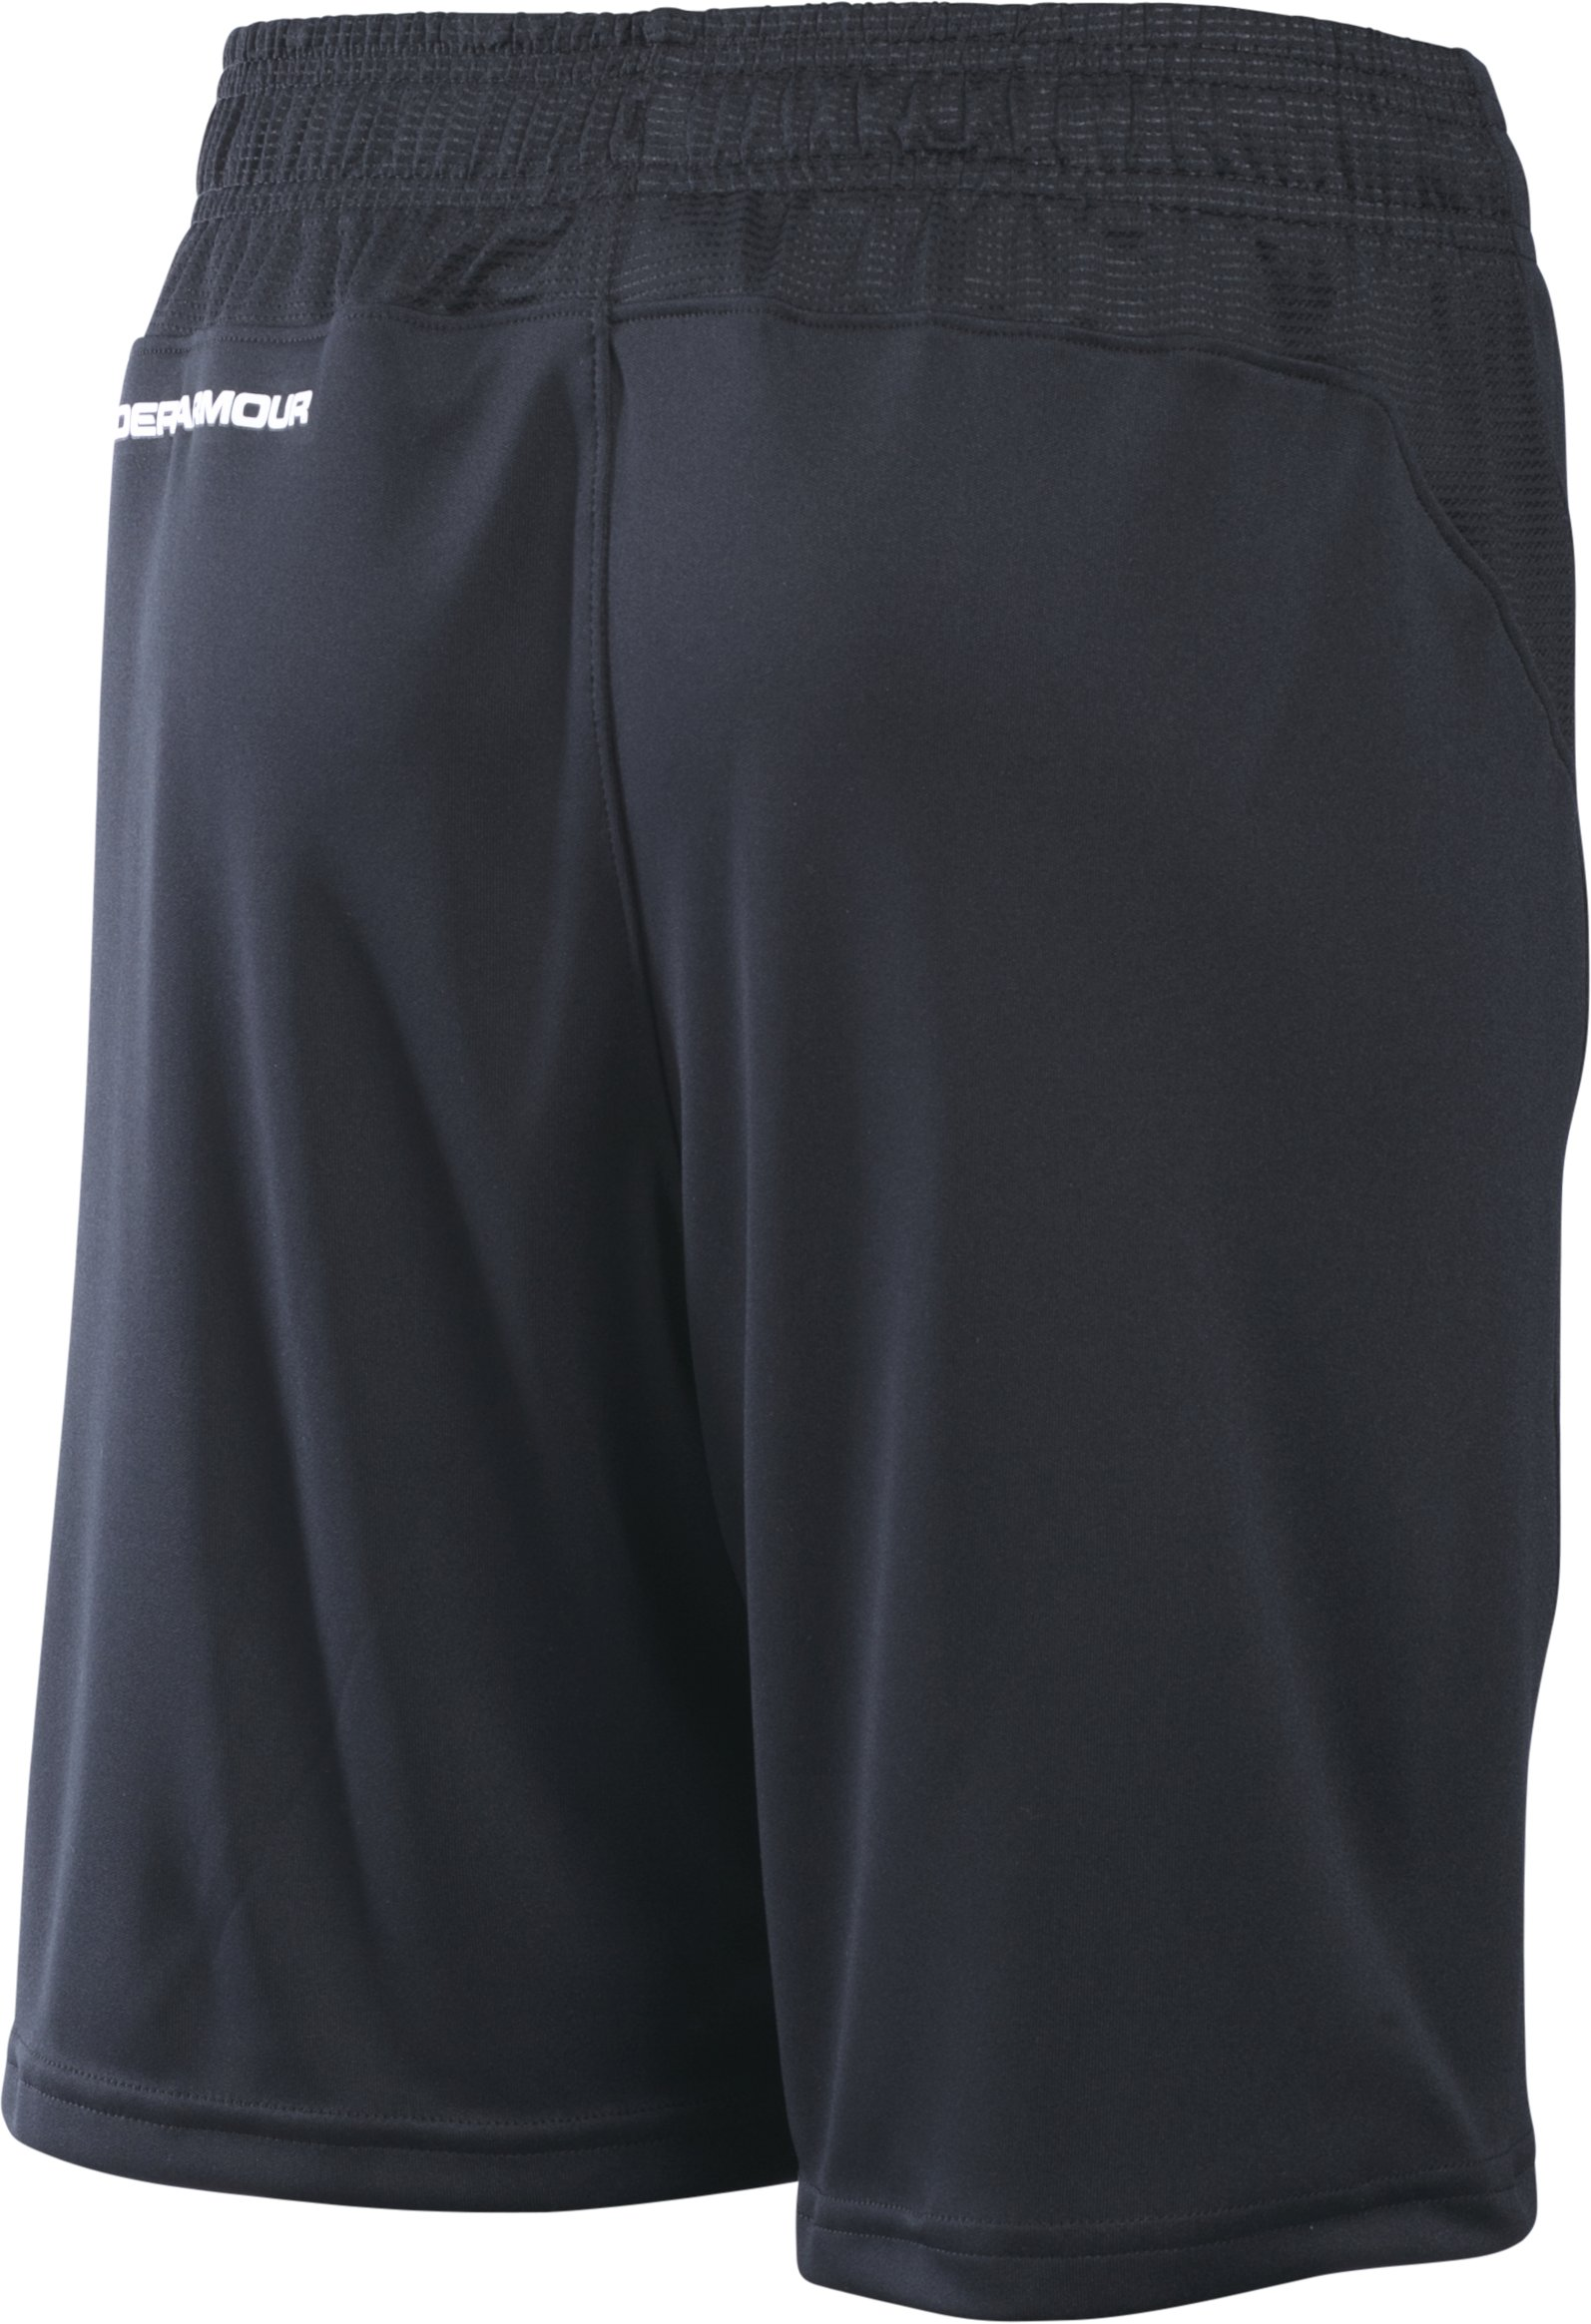 Boys' UA Challenger Knit Shorts, Black